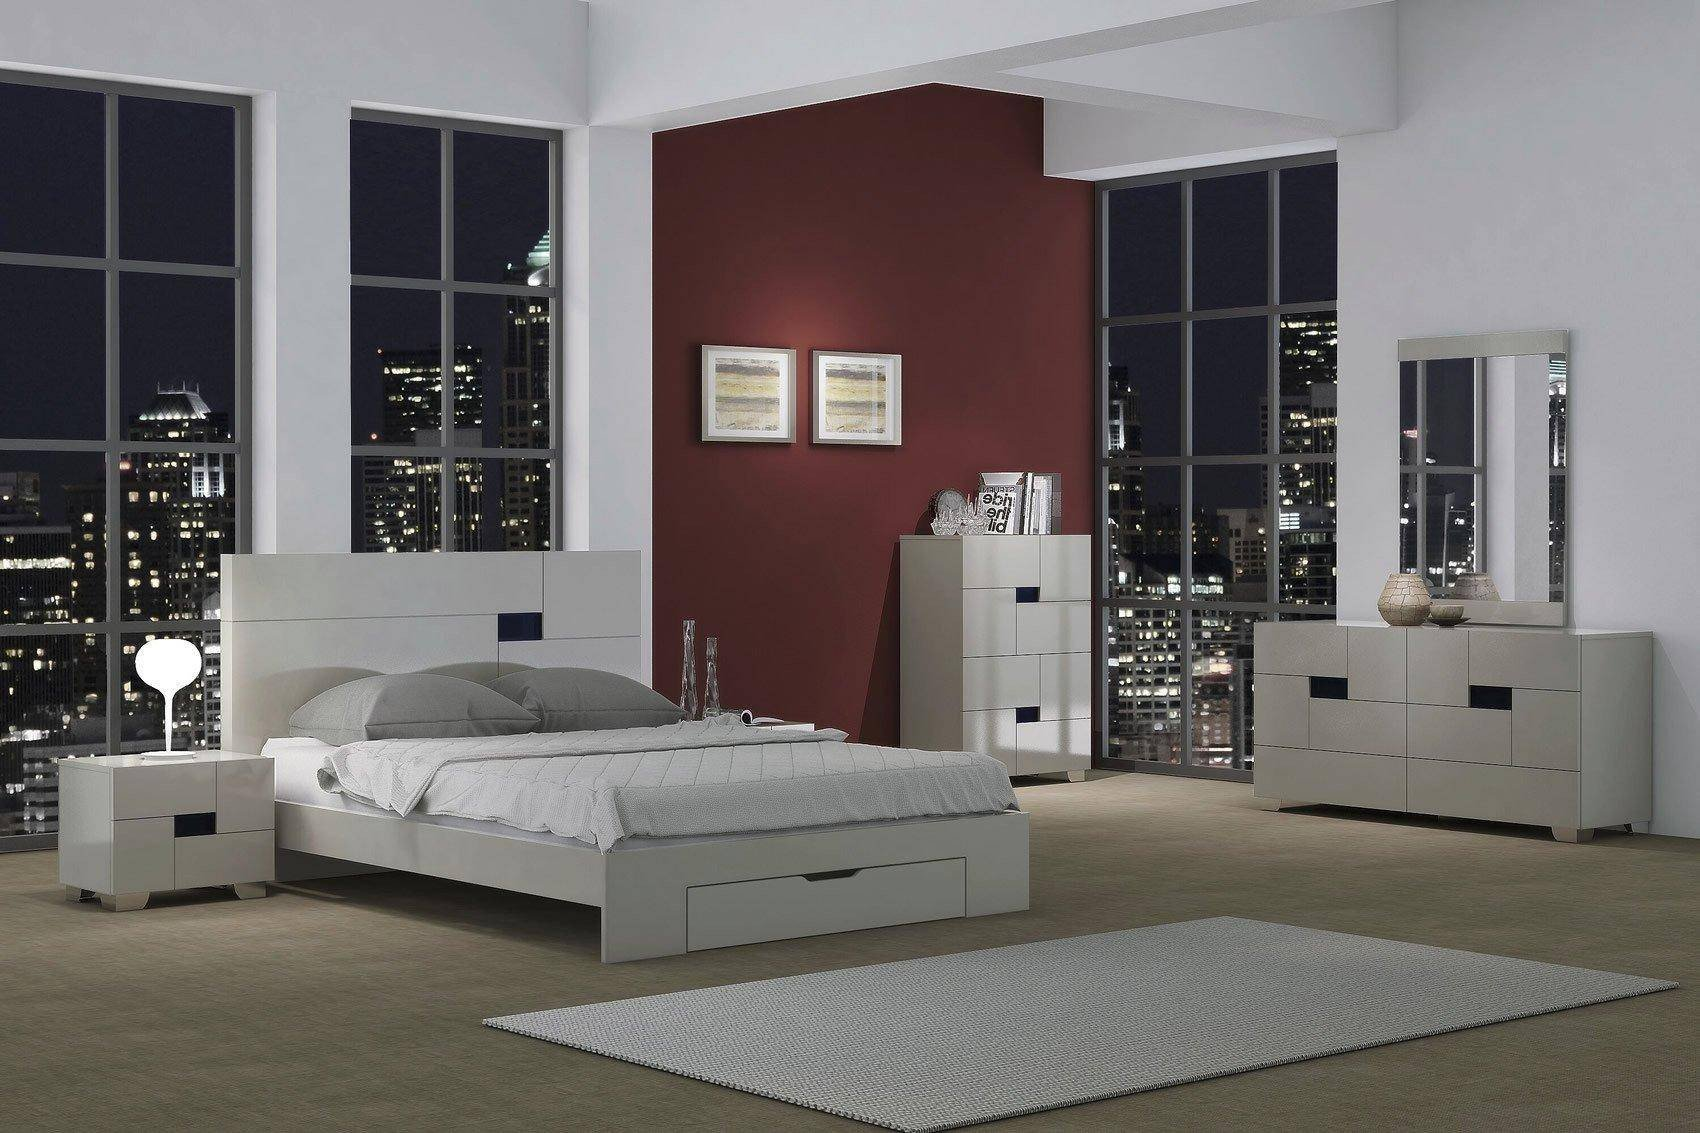 Bedroom Set with Storage Lovely Contemporary Light Gray Lacquer Storage Queen Bedroom Set